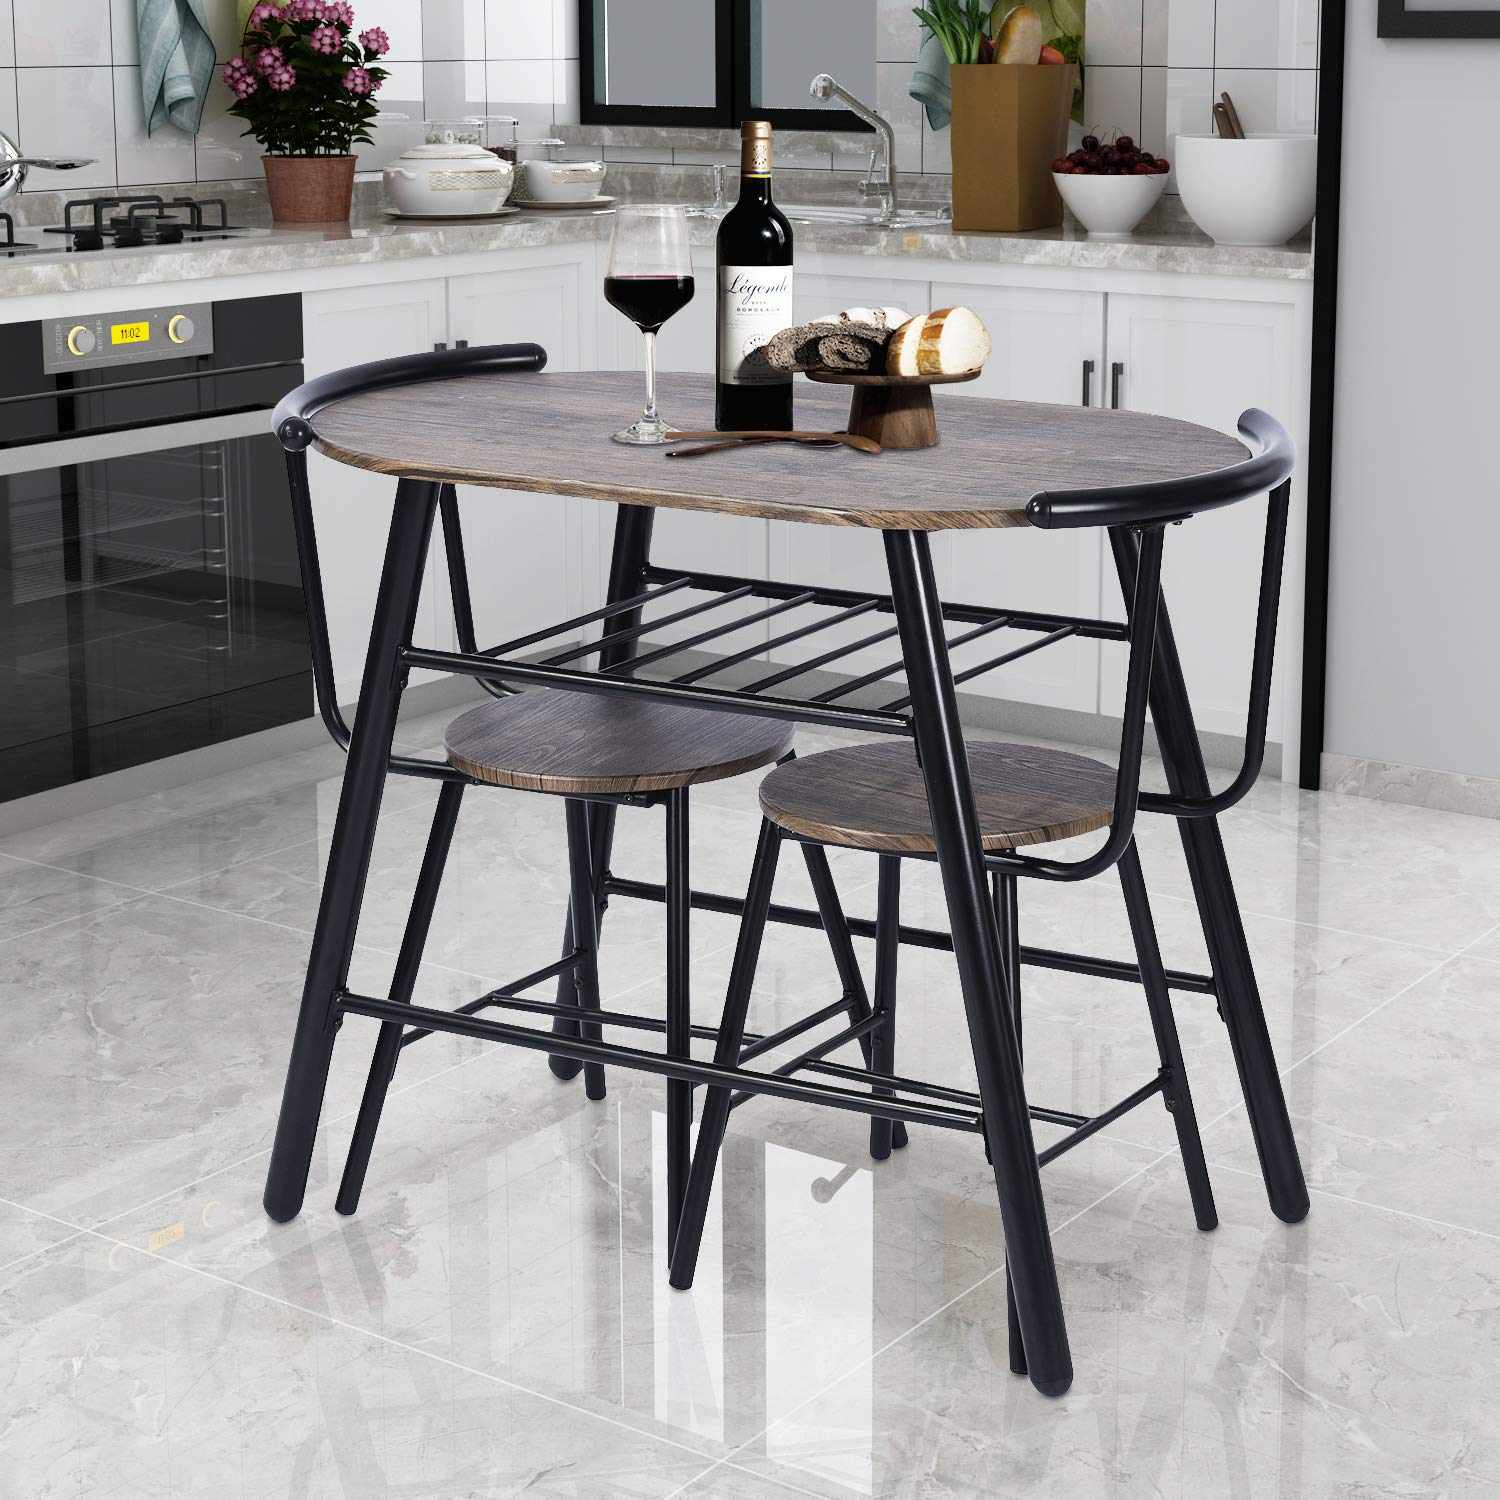 GreenForest 3-Piece Dining Table and Chairs Set Modern Breakfast Table Sets Rustic Bistro Dining Set Bar Pub Table Sets Restaurant Kitchen Table Set, 3 Pieces by GreenForest